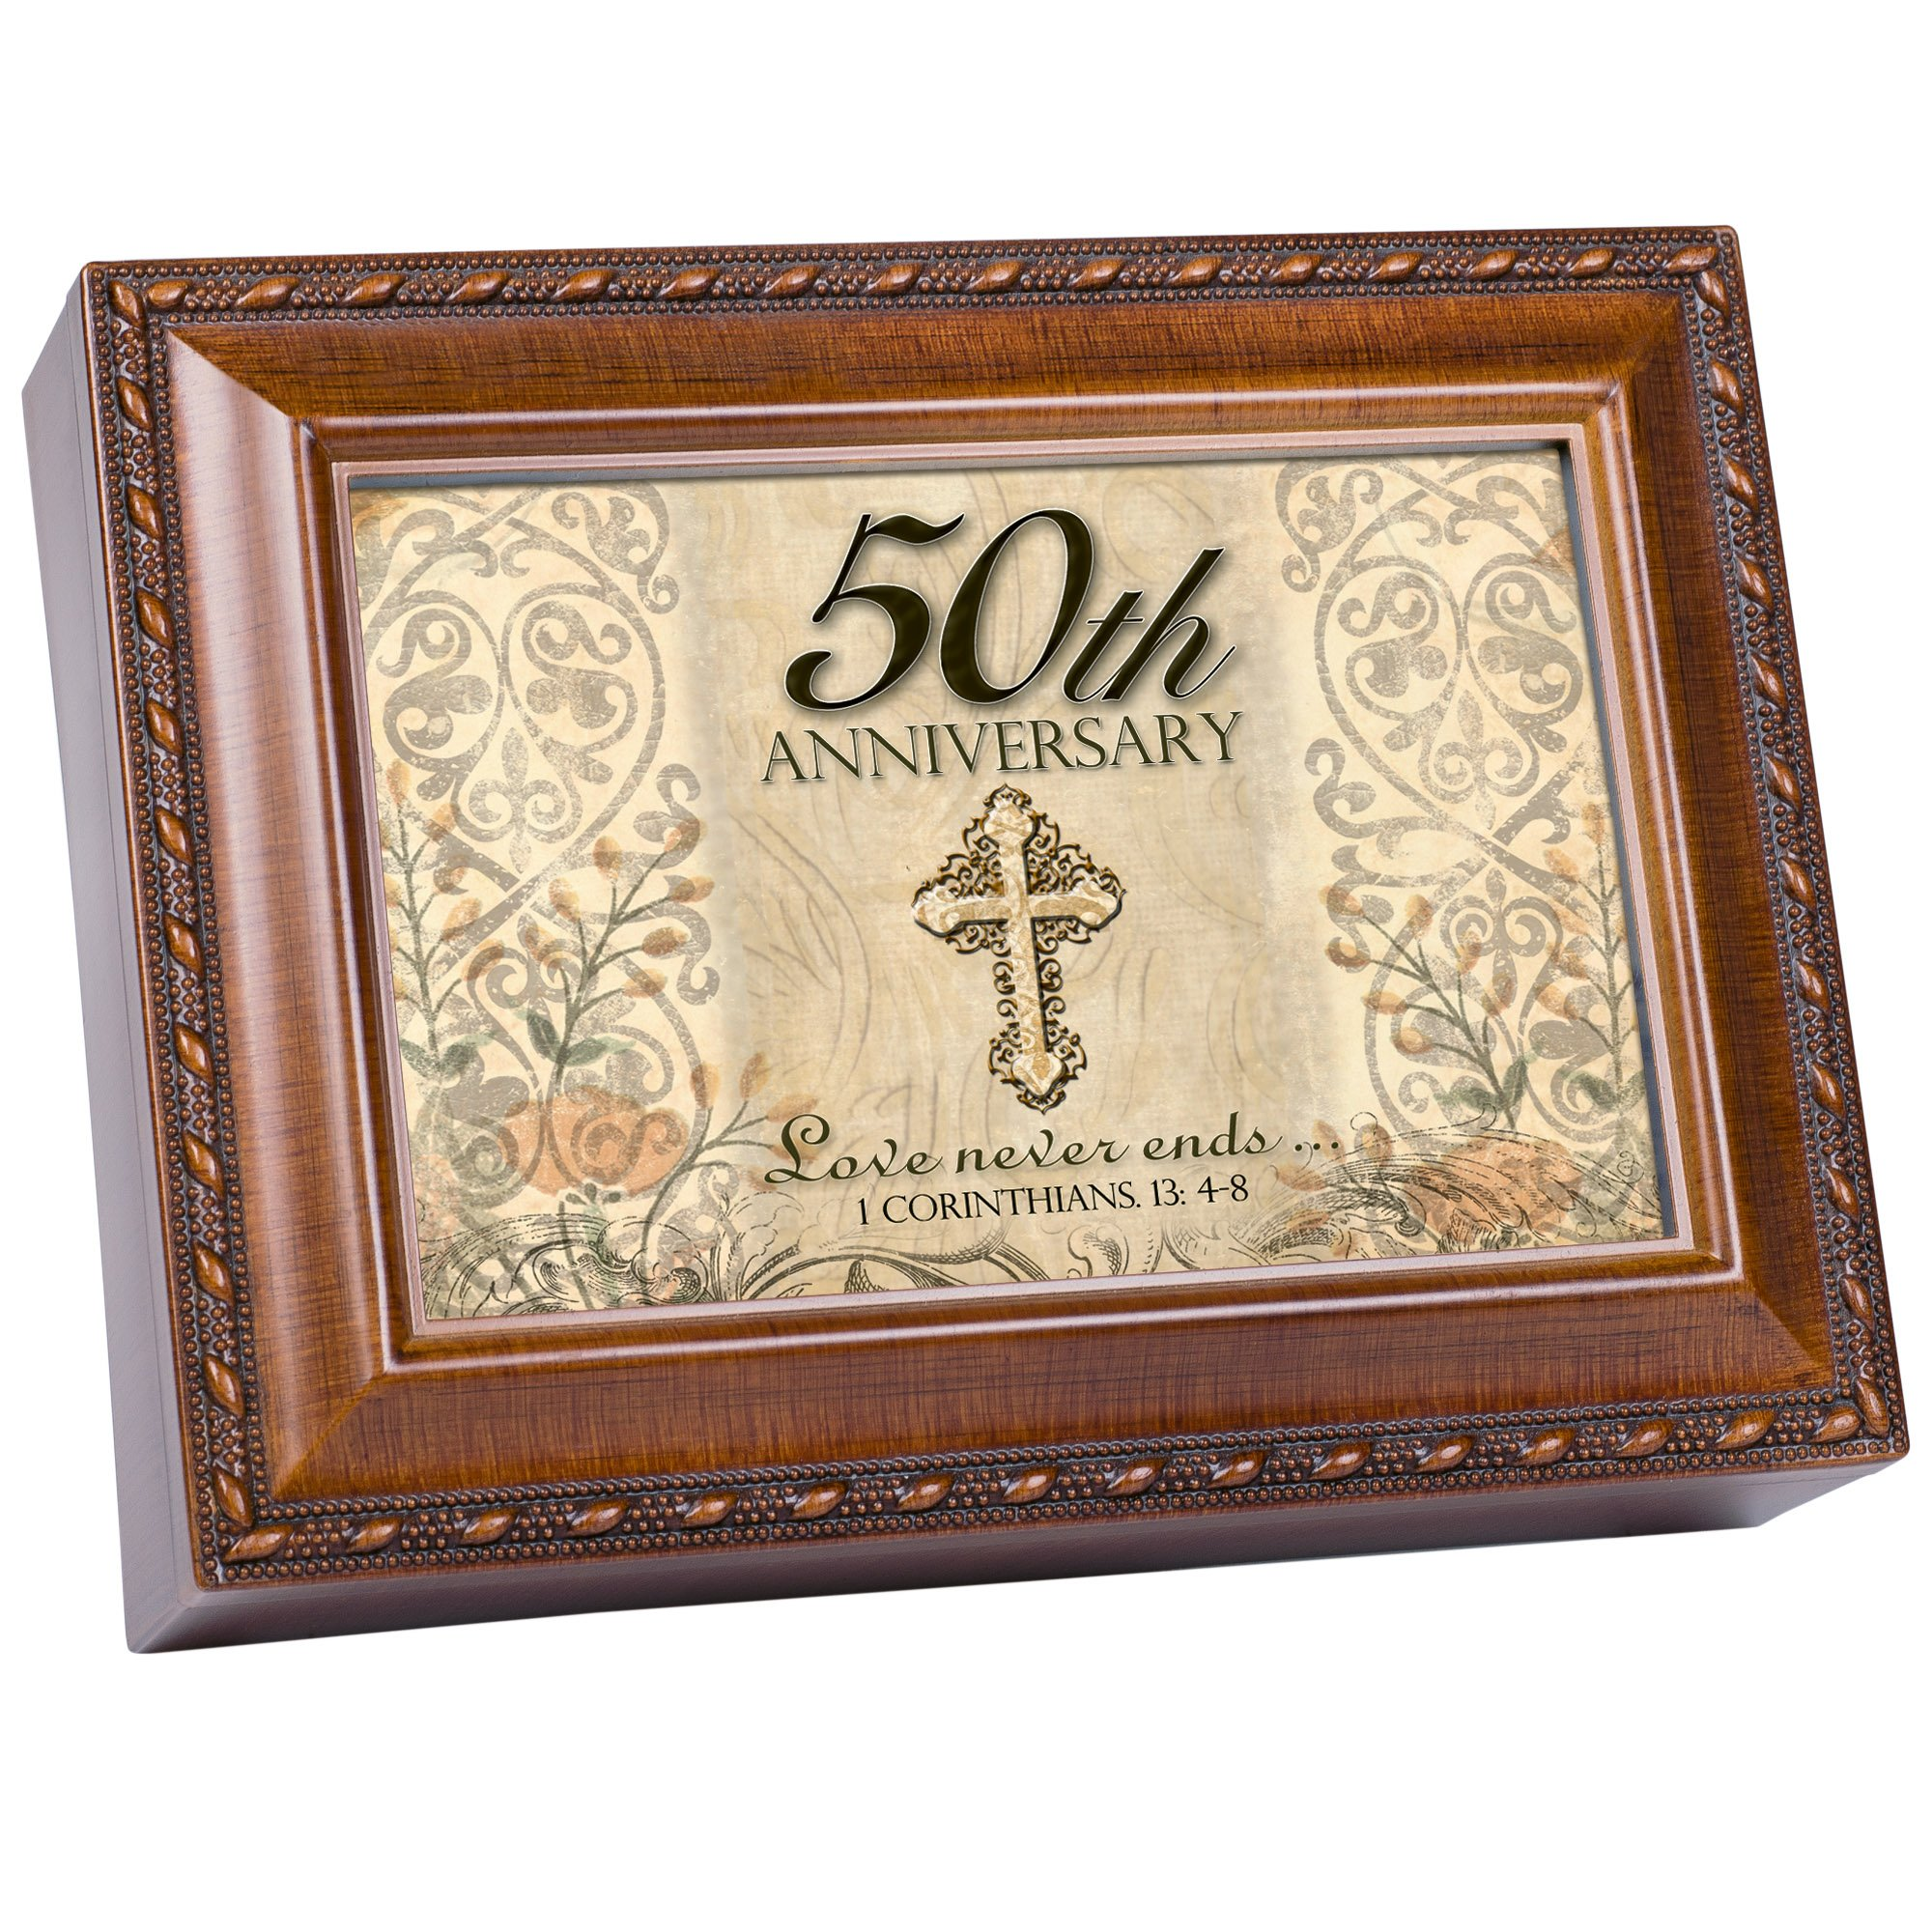 50th Anniversary Music Box (MBC7002S) - Song: Ave Maria